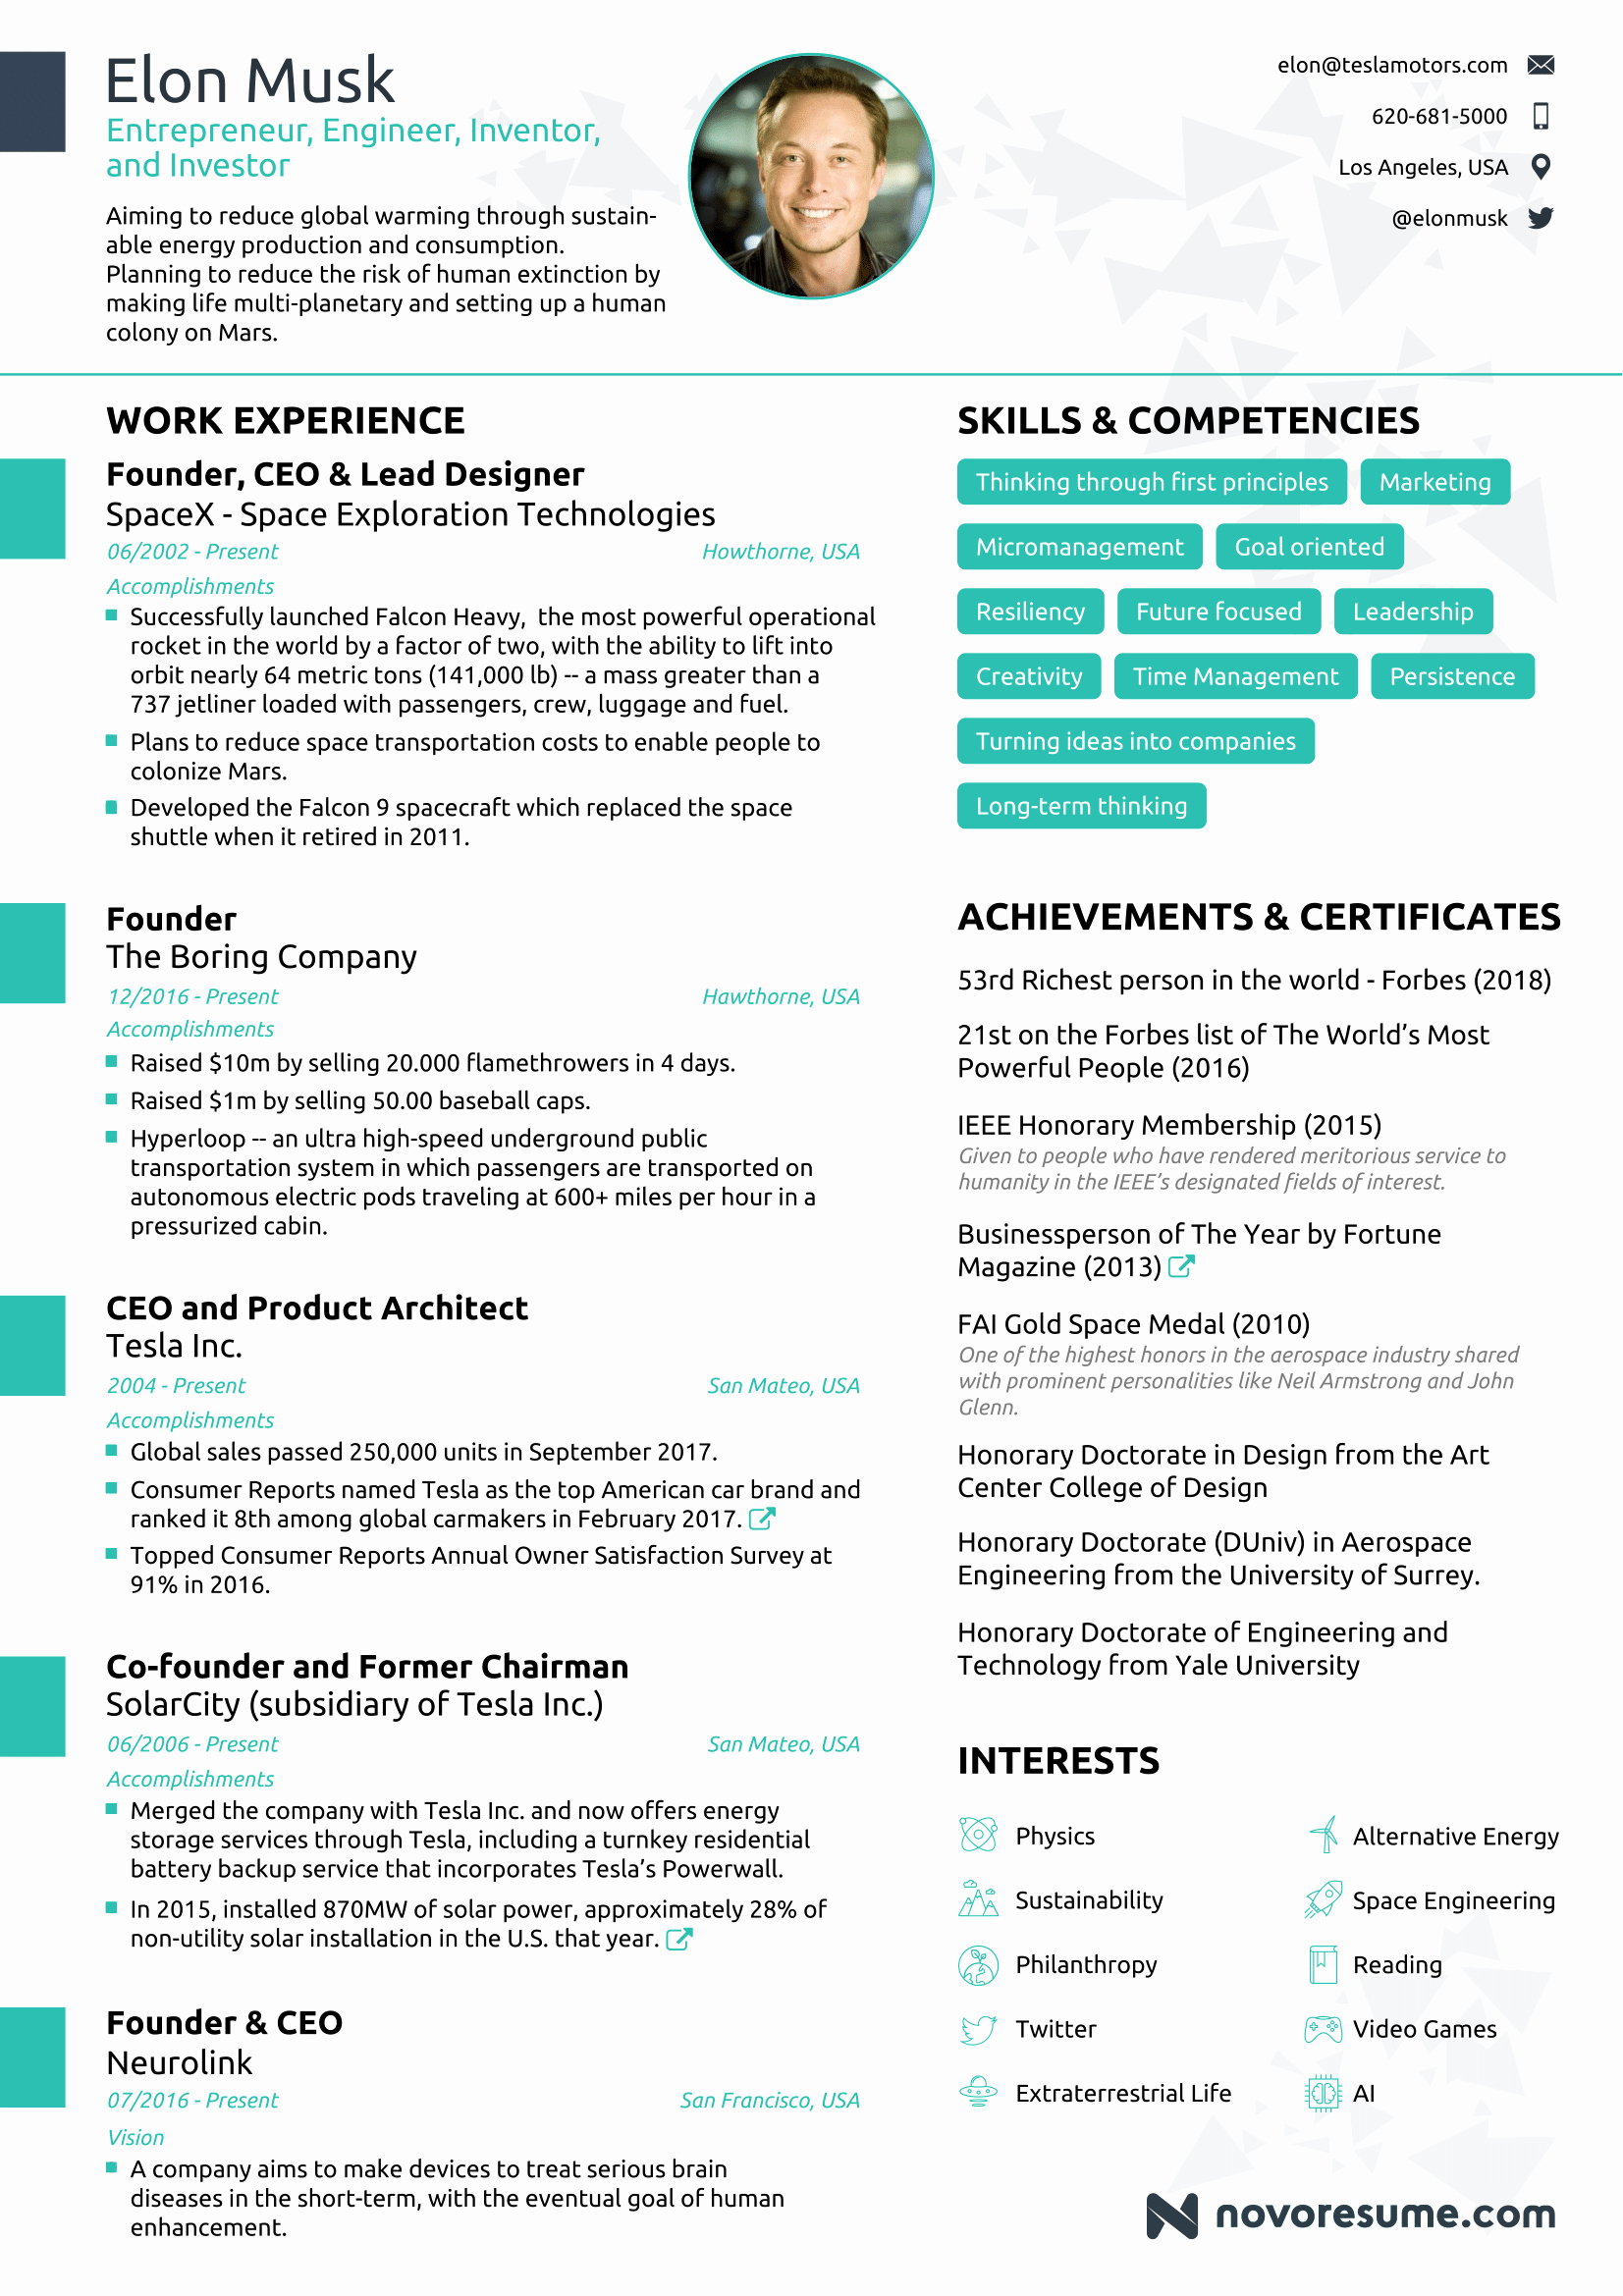 One Page Resume Examples Elegant the Résumé Of Elon Musk by Novorésumé